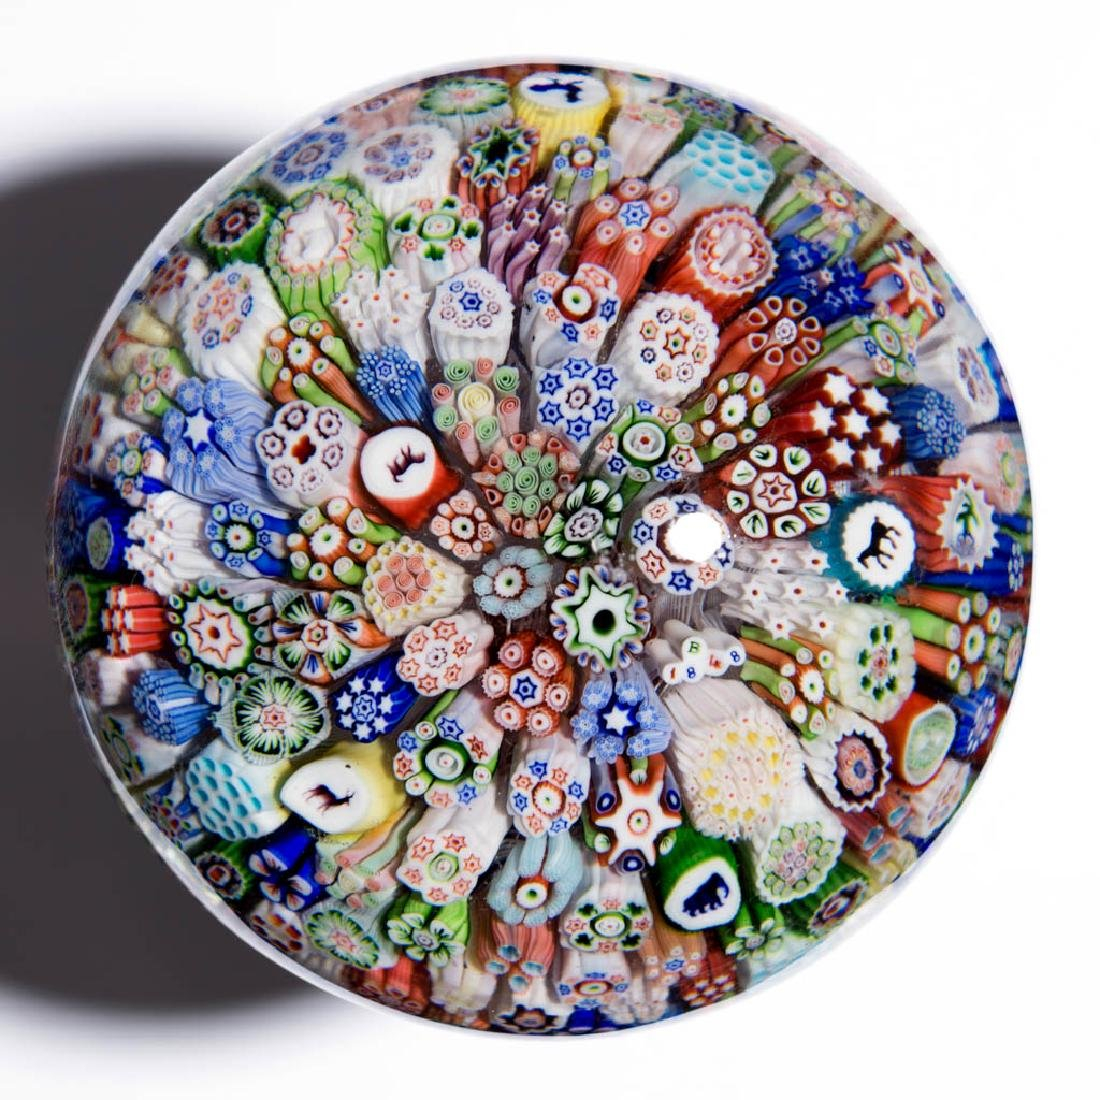 ANTIQUE BACCARAT MILLEFIORI AND SILHOUETTE PAPERWEIGHT